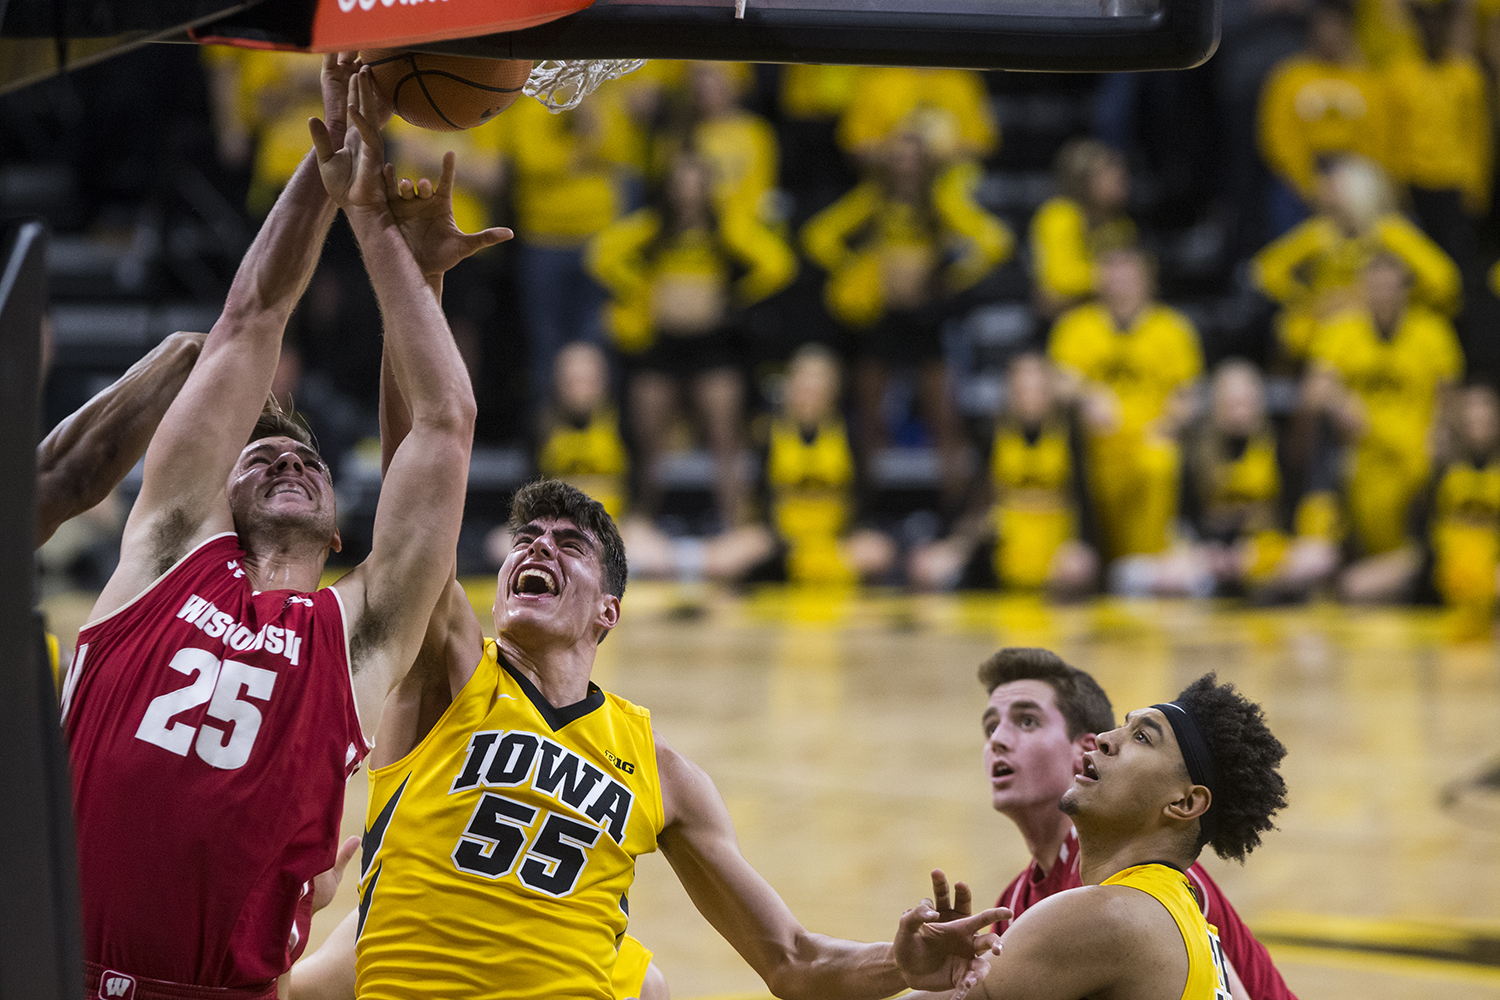 Iowa's Luka Garza (55) and Wisconsin's Alex Illikainen (25) jump for the rebound during the NCAA men's basketball game between Iowa and Wisconsin at Carver-Hawkeye Arena on Tuesday, Jan. 23, 2018.